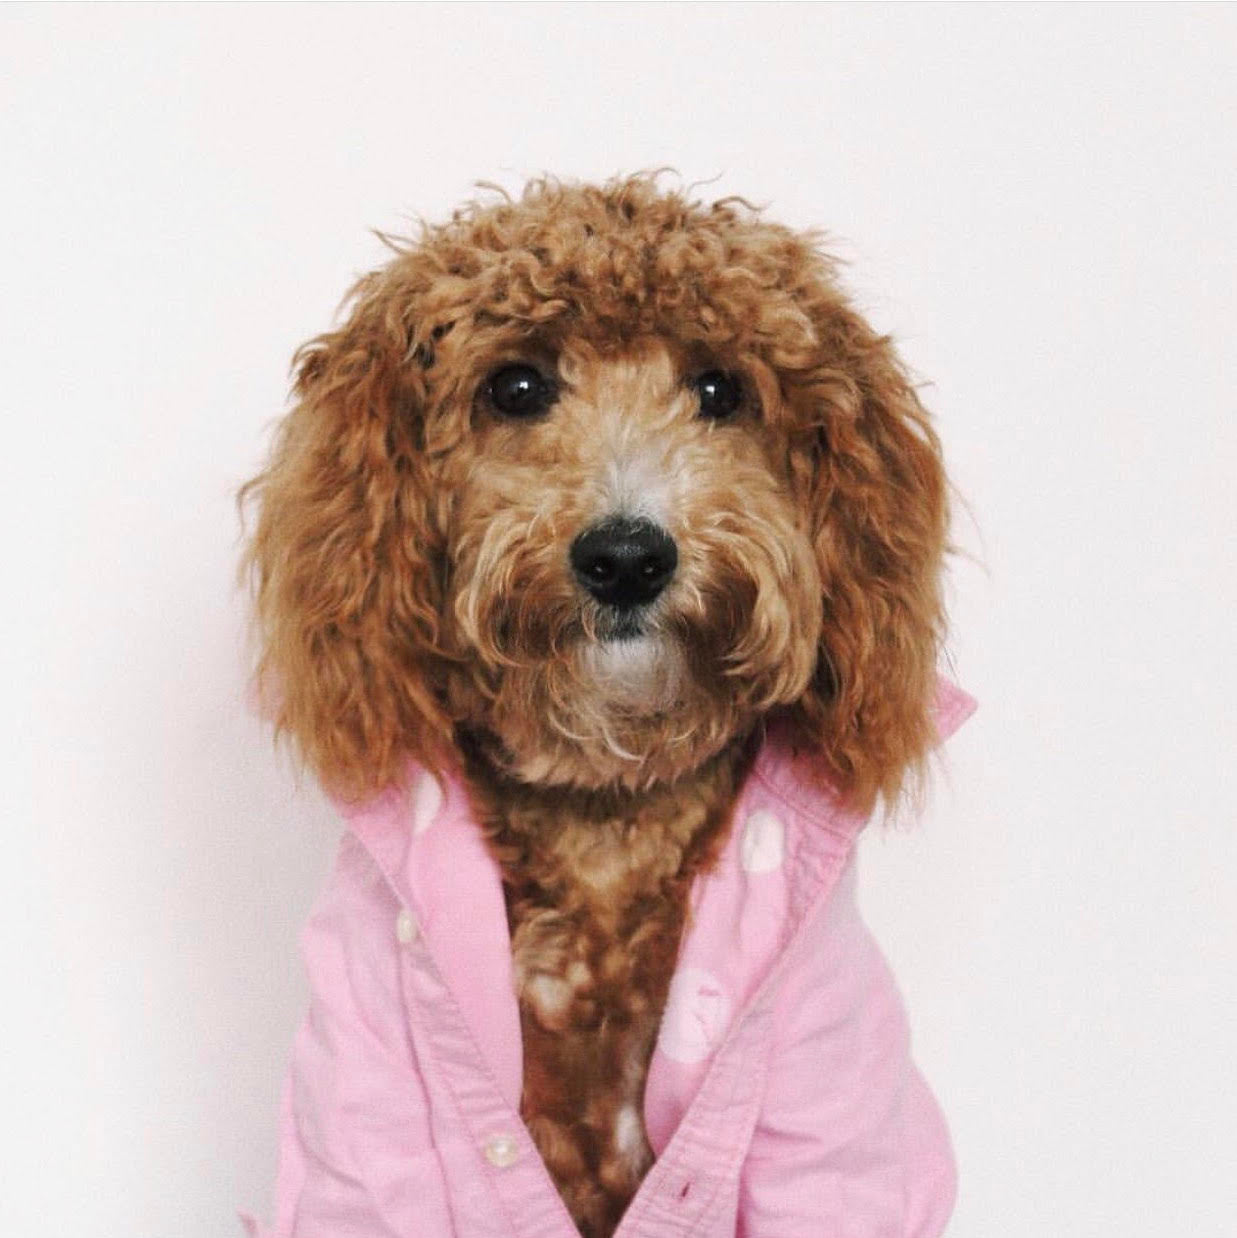 8 Instagram Dogs That Should Be the Bachelor | Blog | Gift Spawt